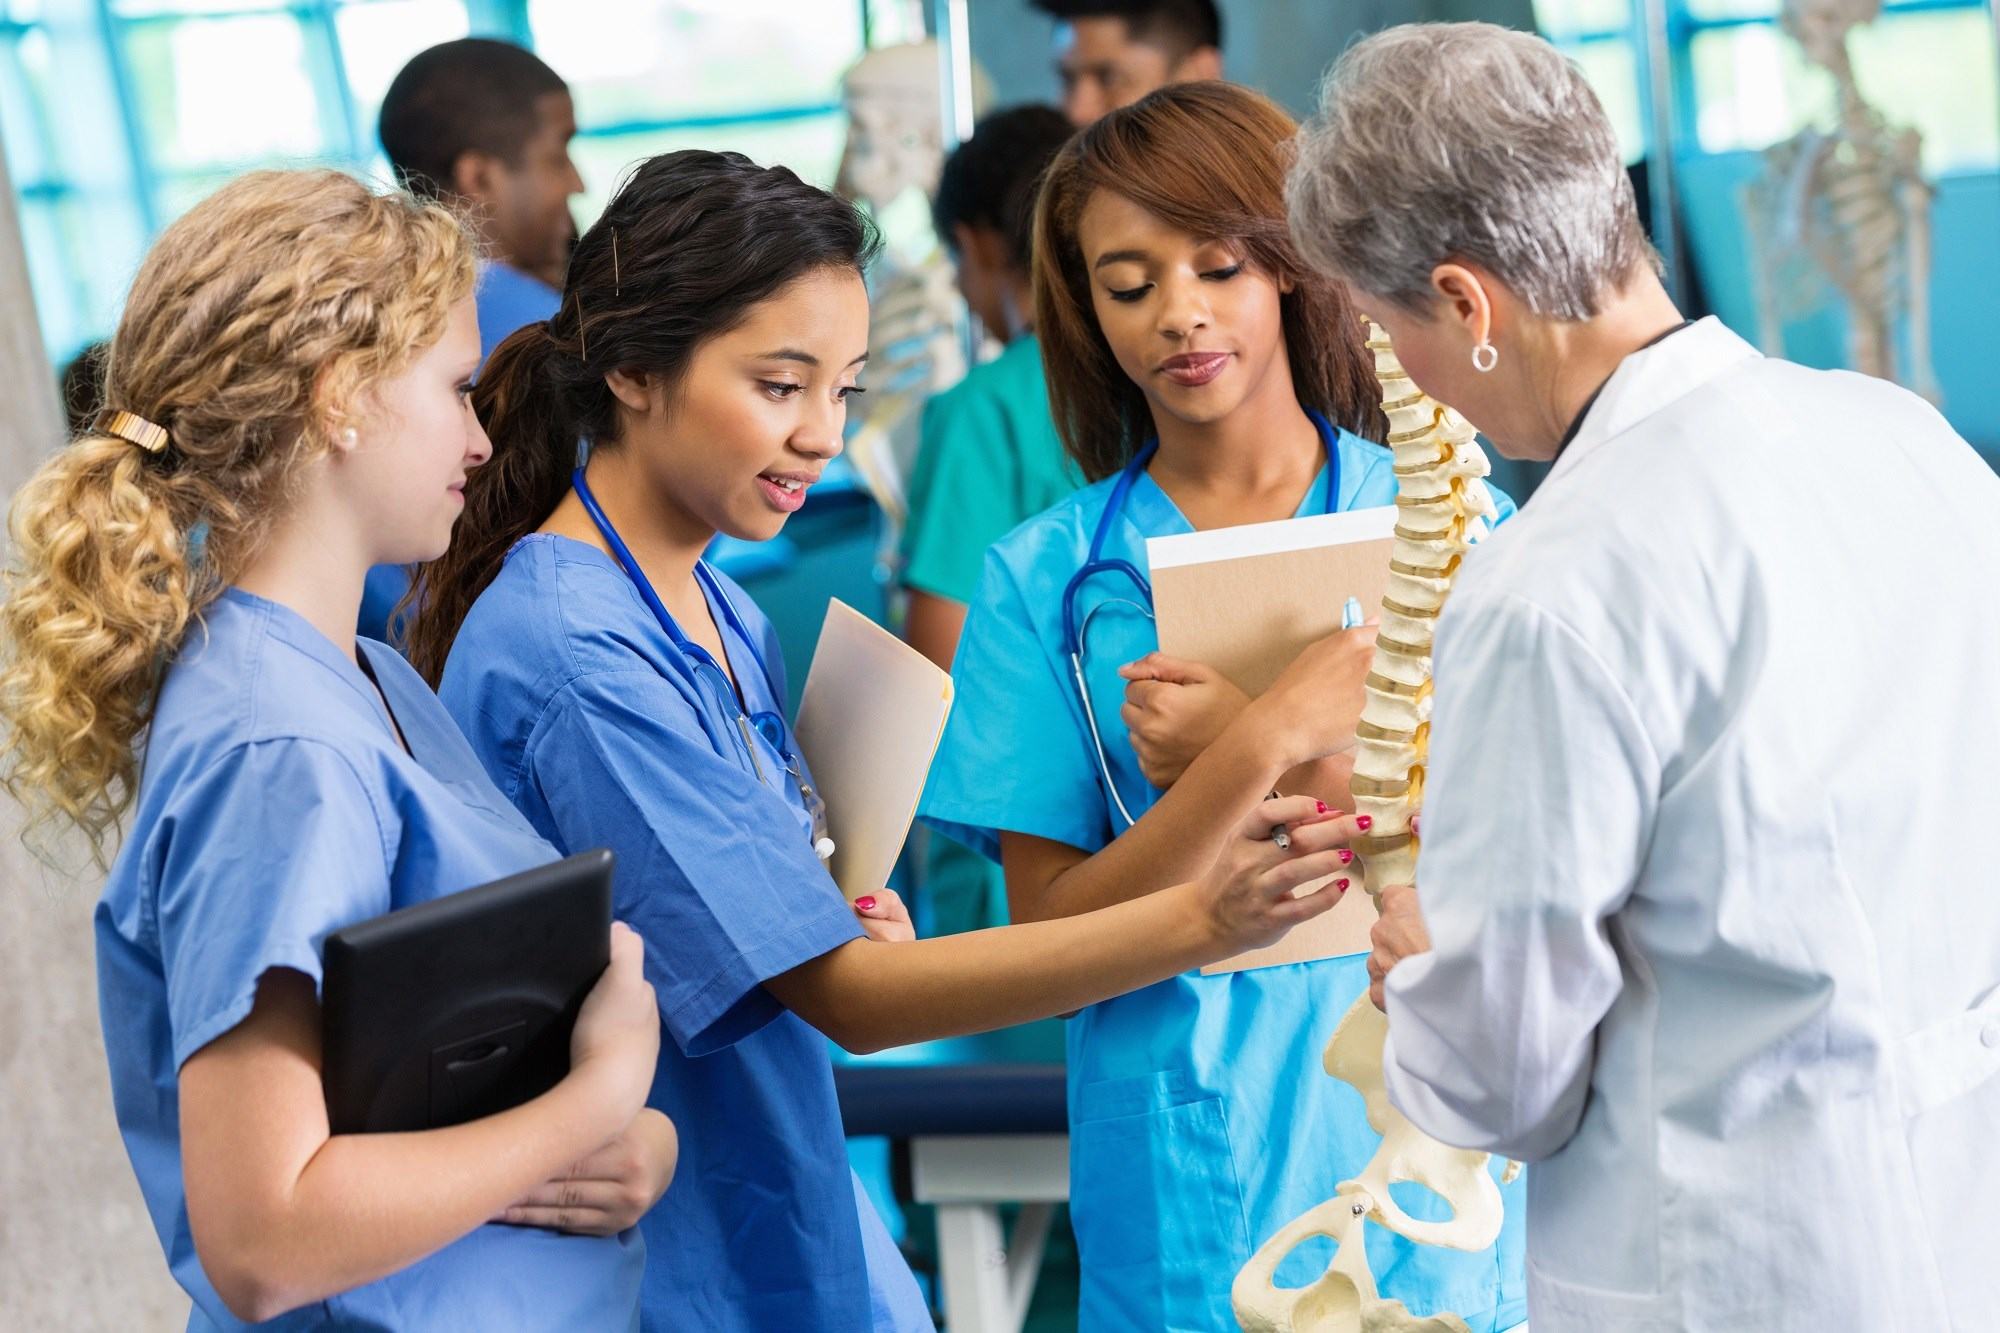 Gender Equity Initiative Reduces Salary Gap Among Medical School Faculty